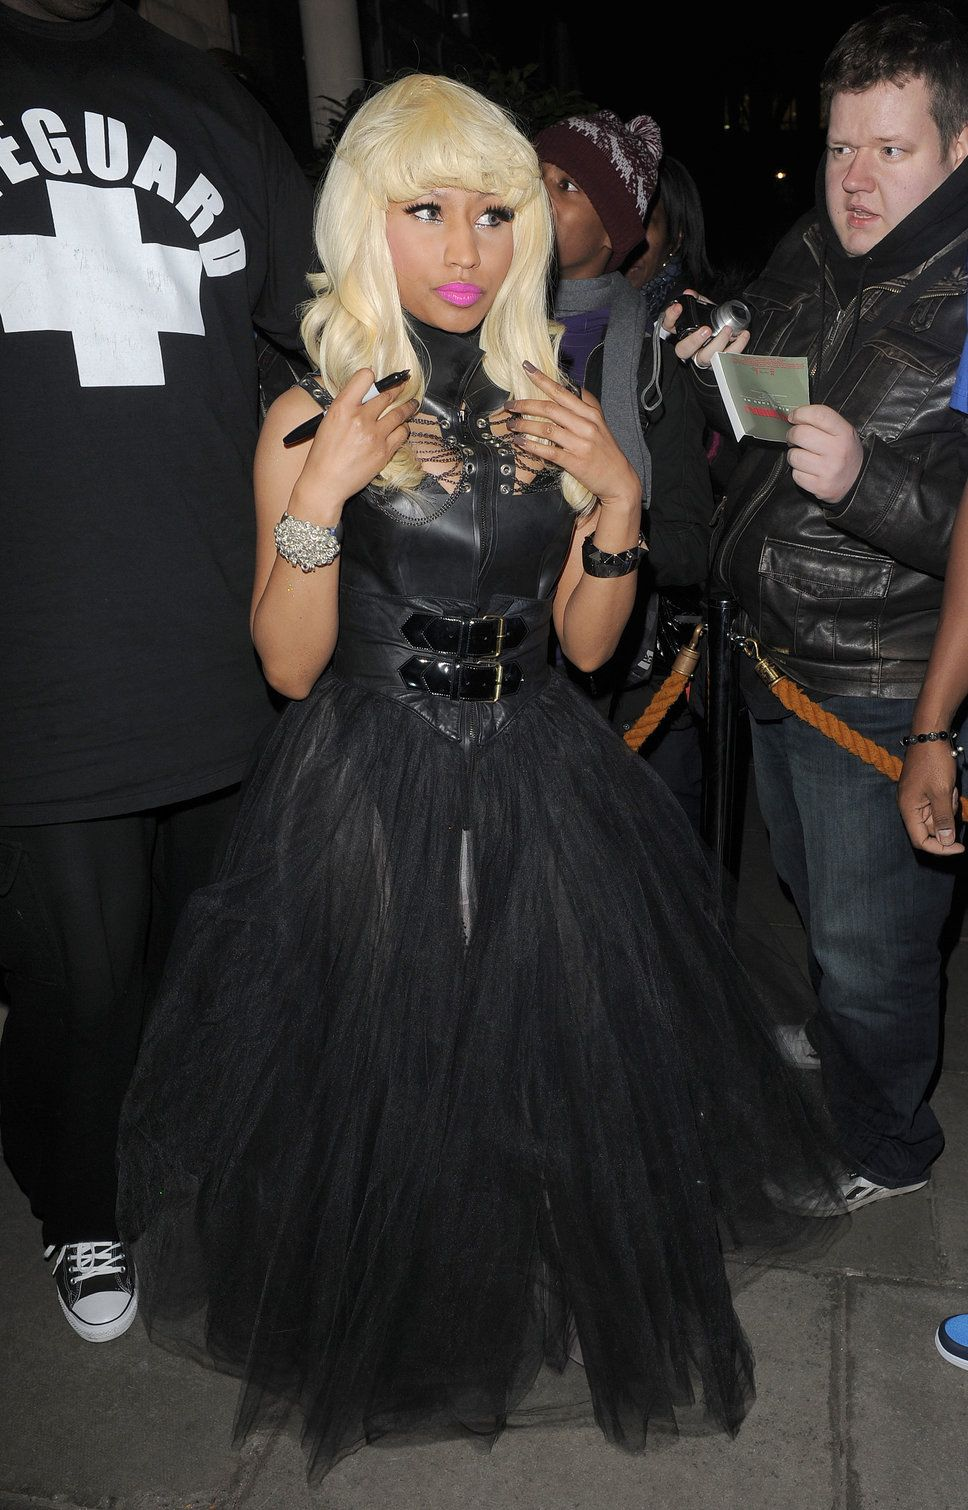 no really nicki minaj tries on the goth style but no